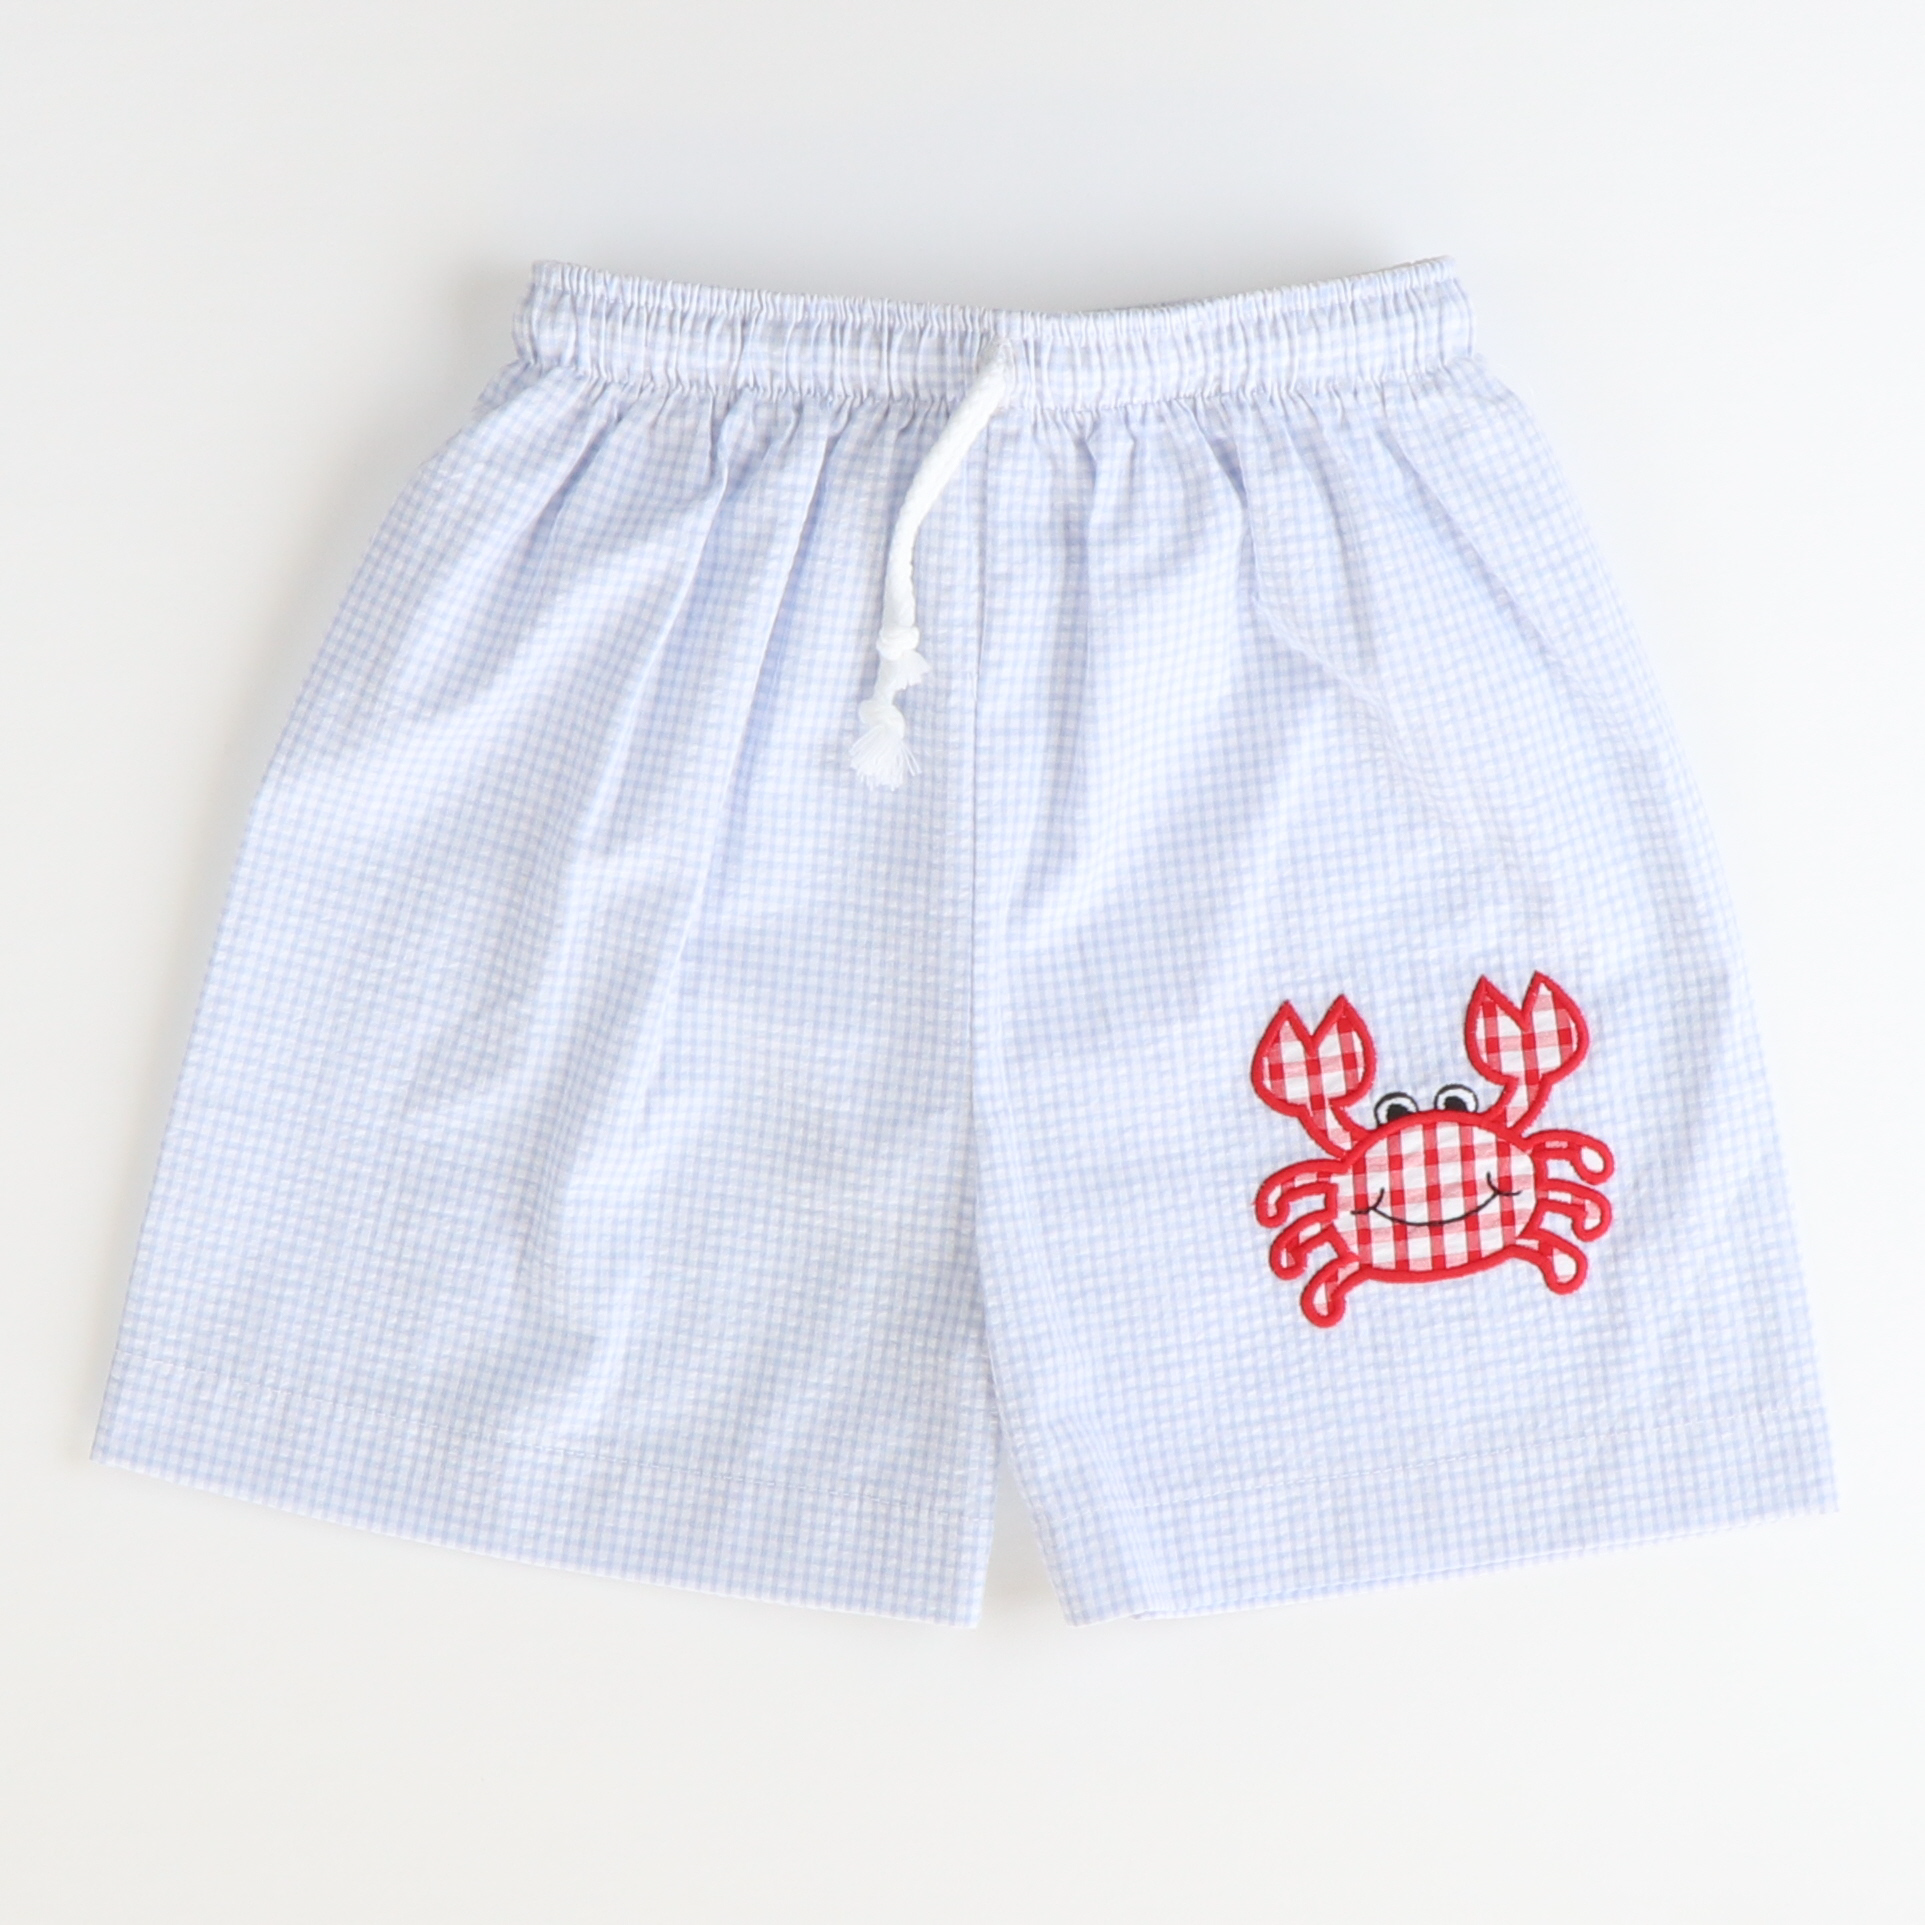 Appliqué Crab Swim Trunks - Light Blue Mini Check Seersucker